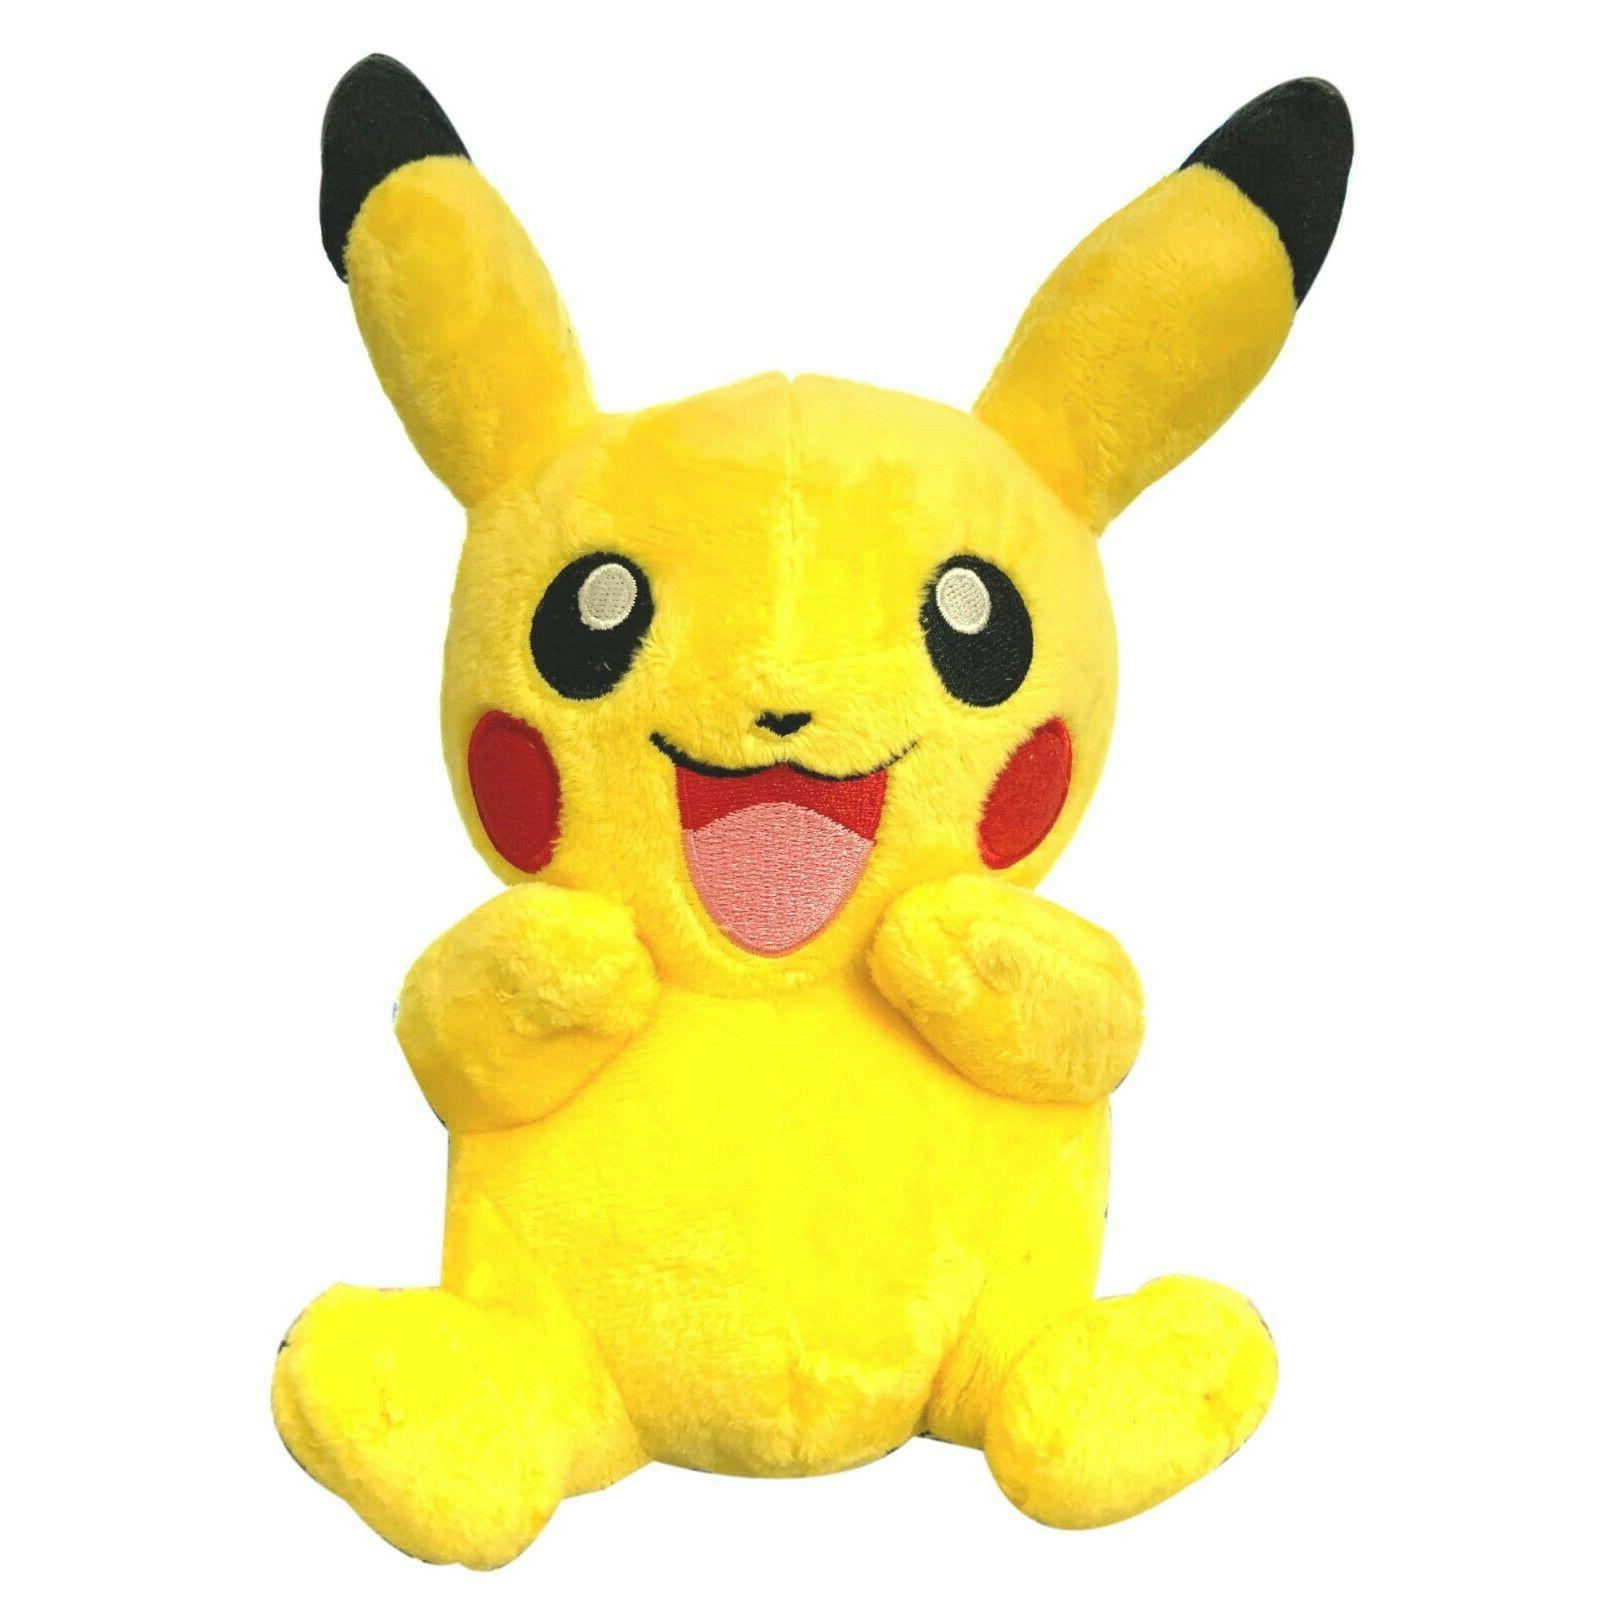 pokemon 9 pikachu stuffed animal soft plush